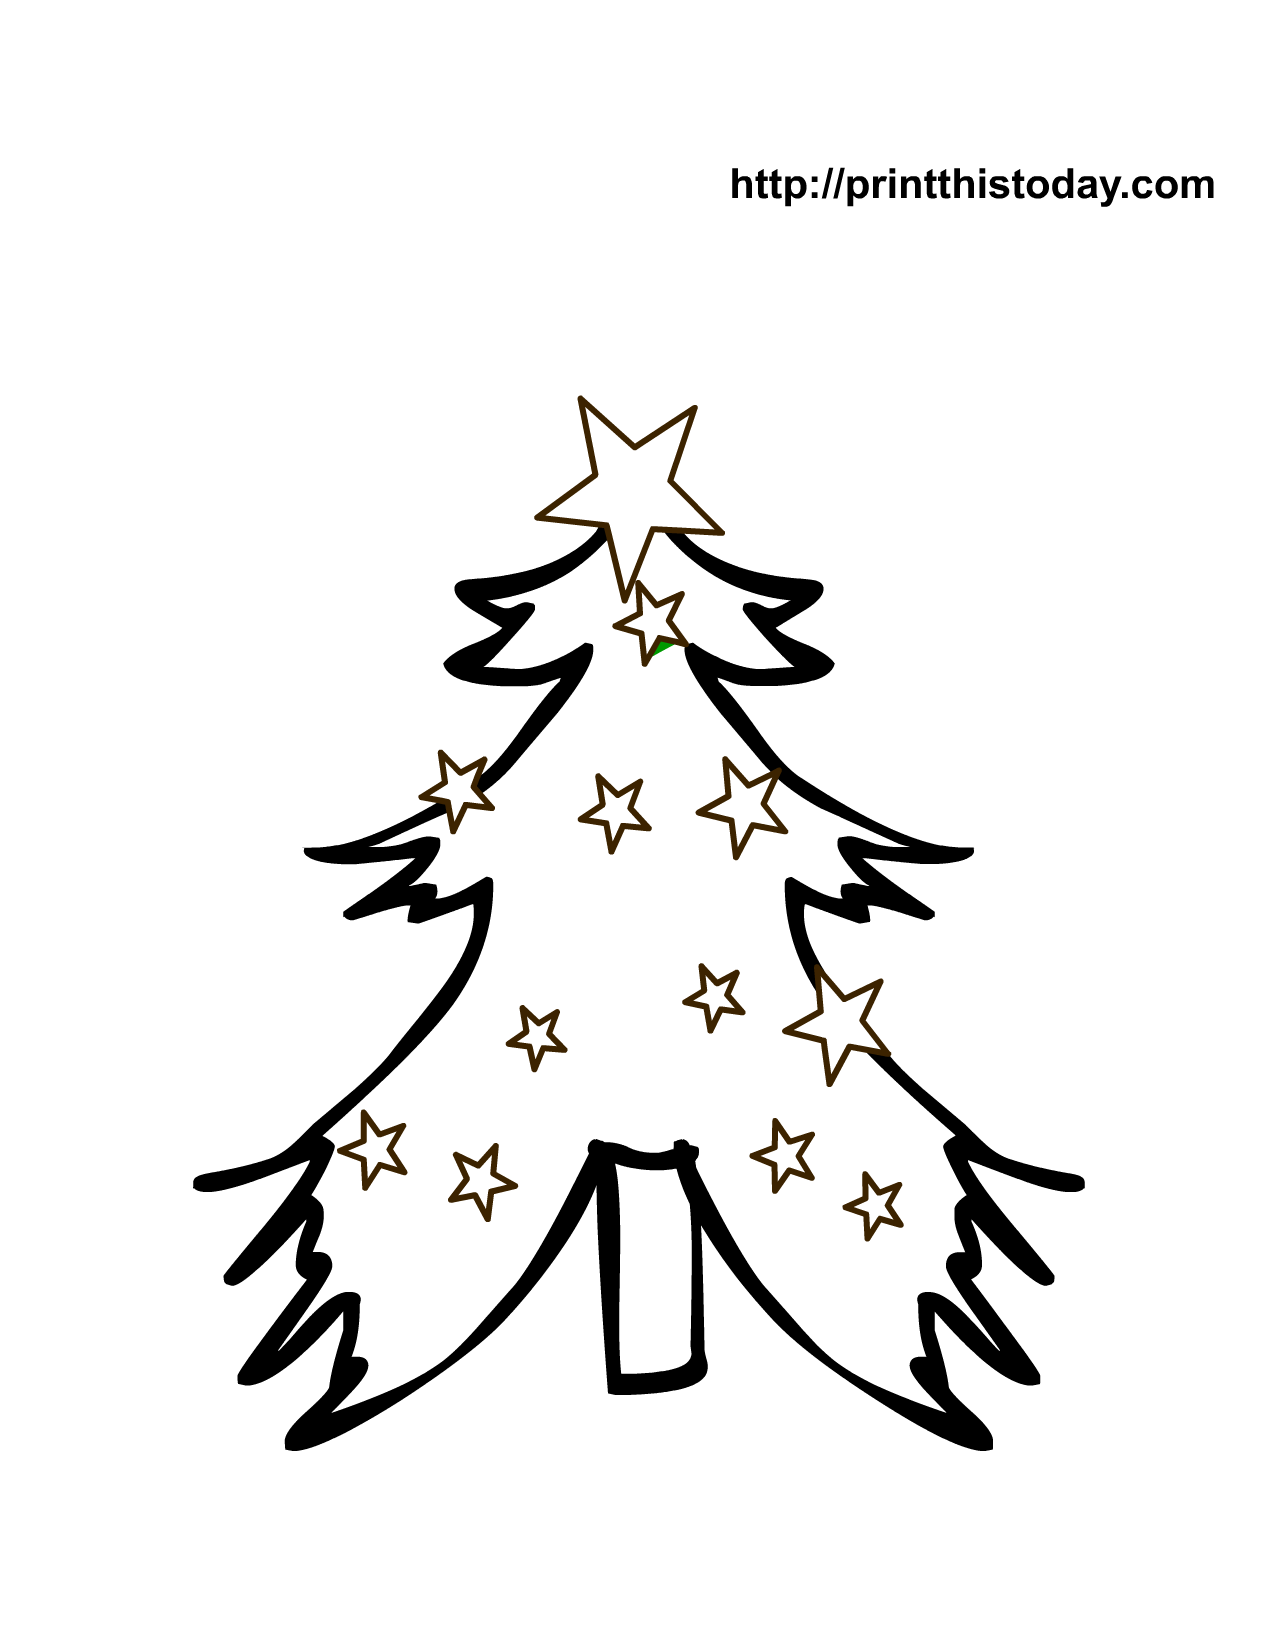 Free Printable Christmas Tree Coloring Pages | Tree ...